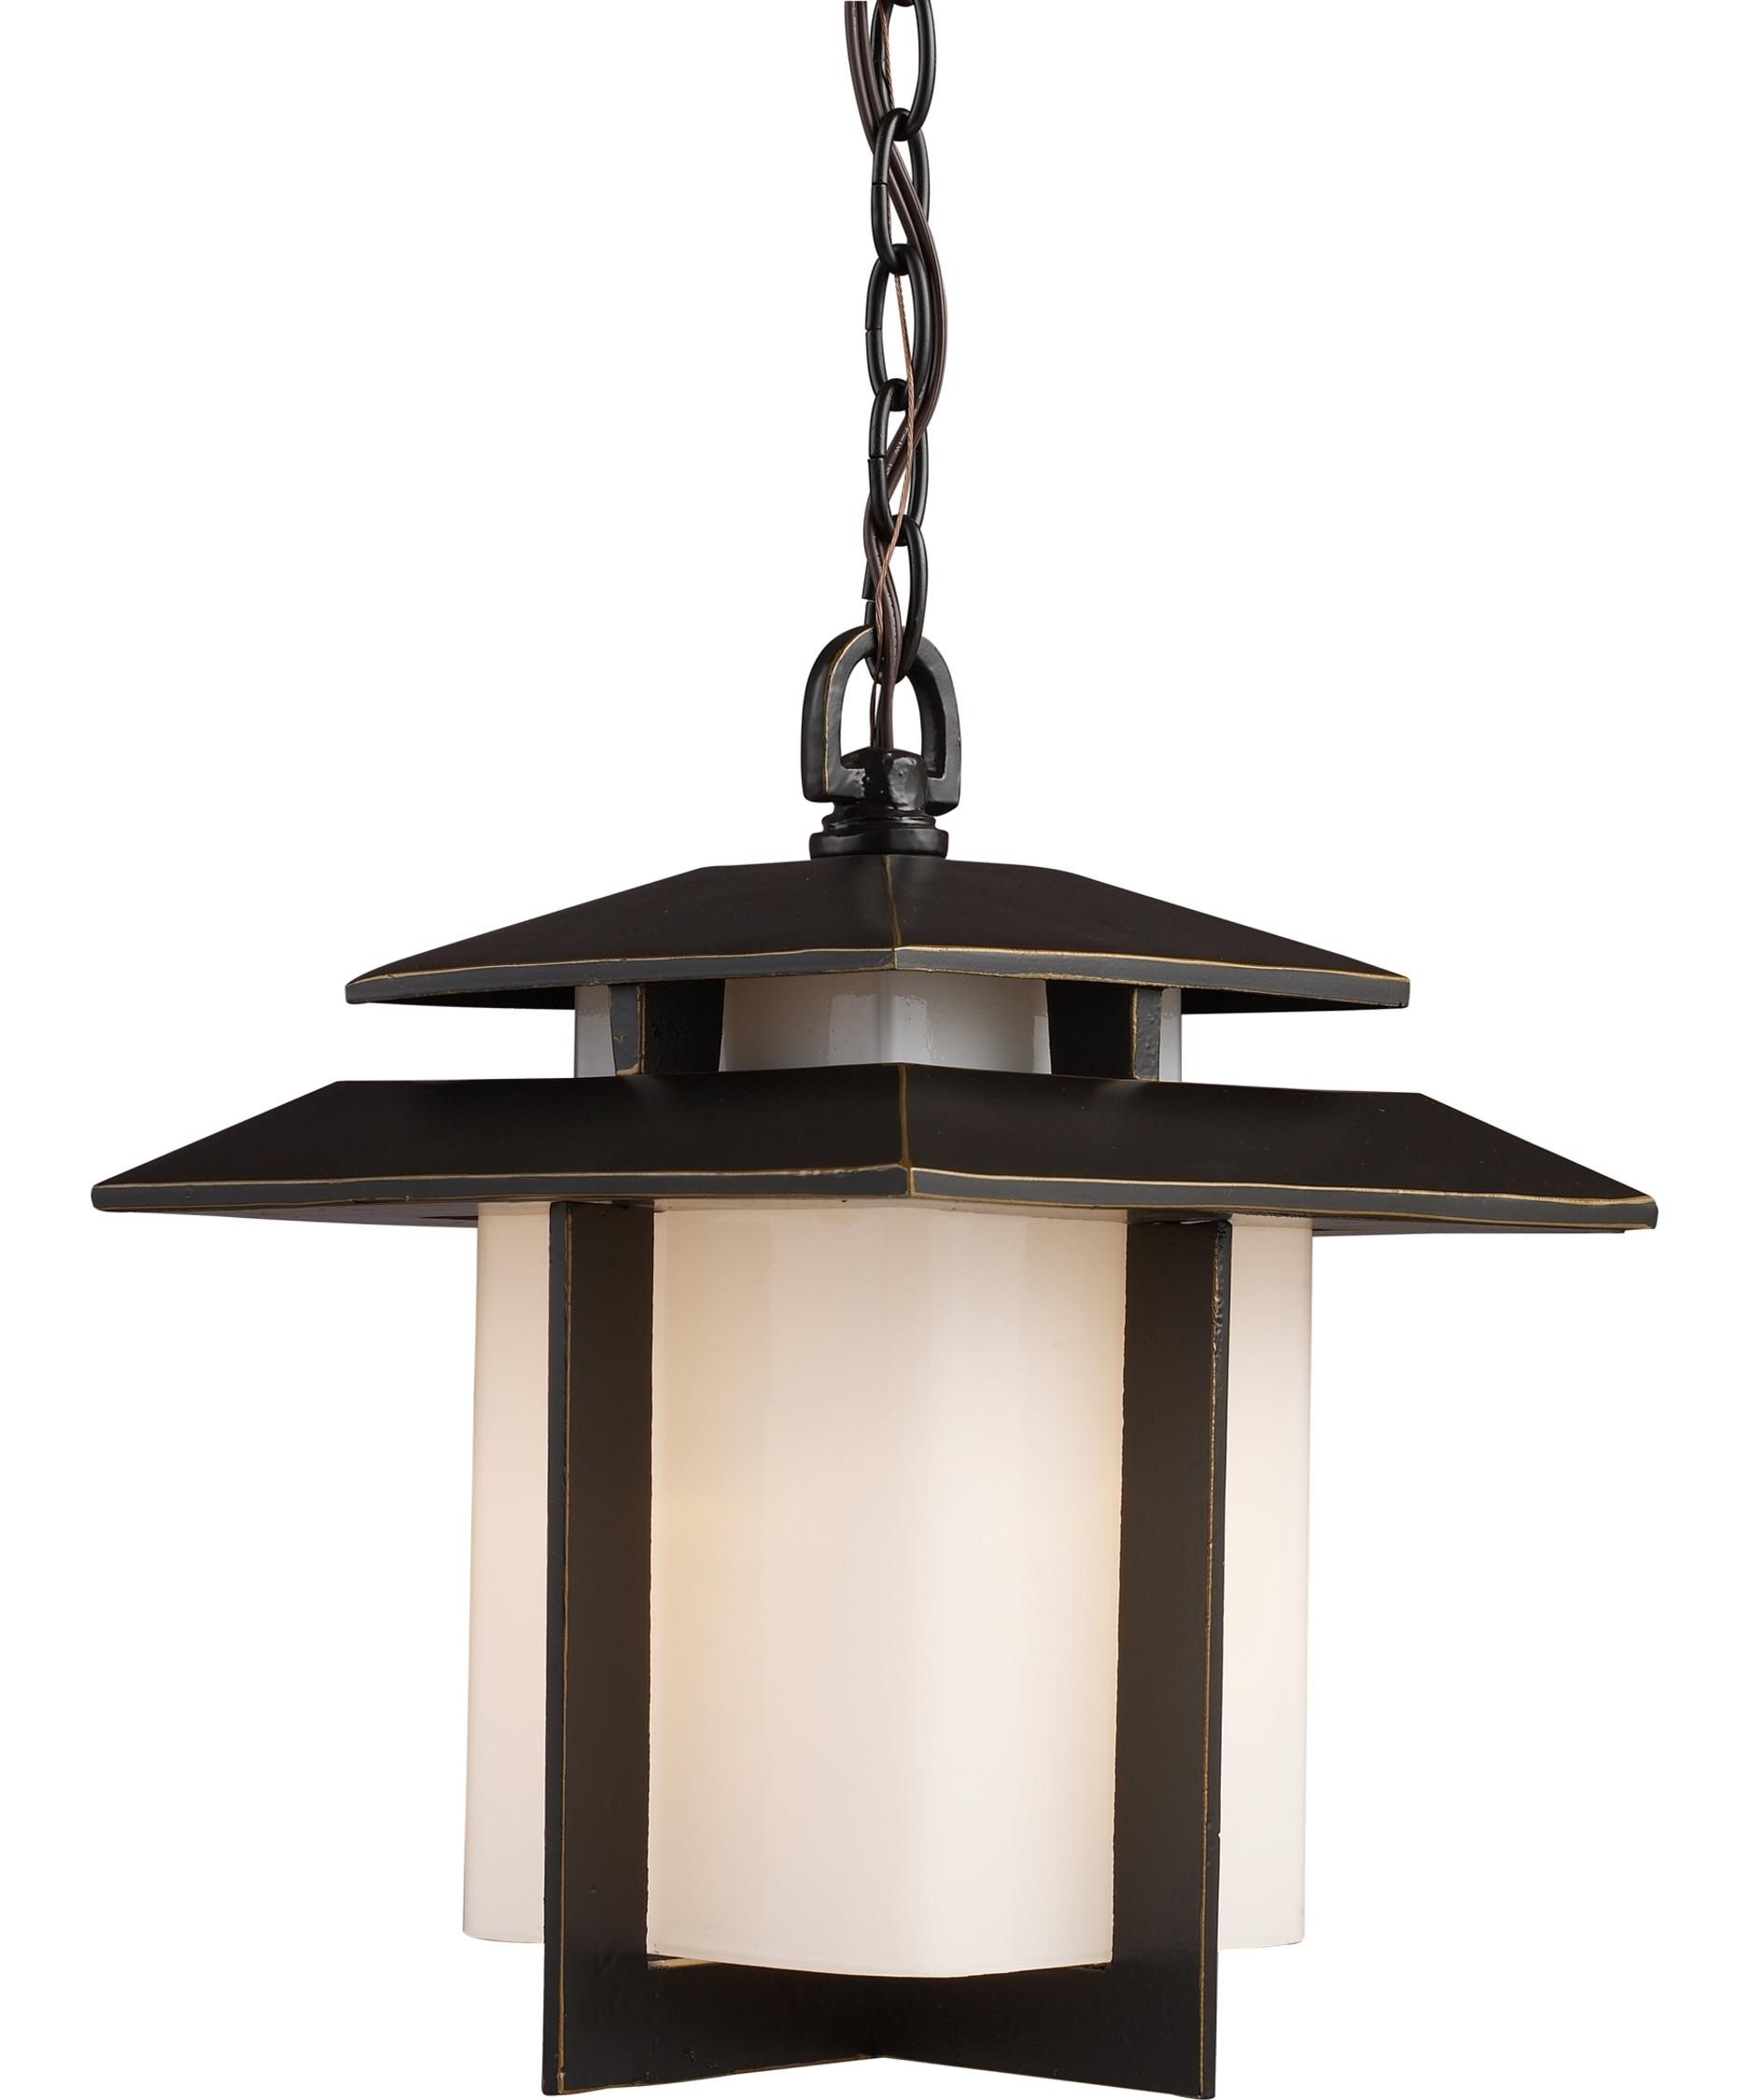 Elk Lighting 42172 1 Kanso 10 Inch Wide 1 Light Outdoor Hanging Pertaining To Outdoor Hanging Japanese Lanterns (View 7 of 20)